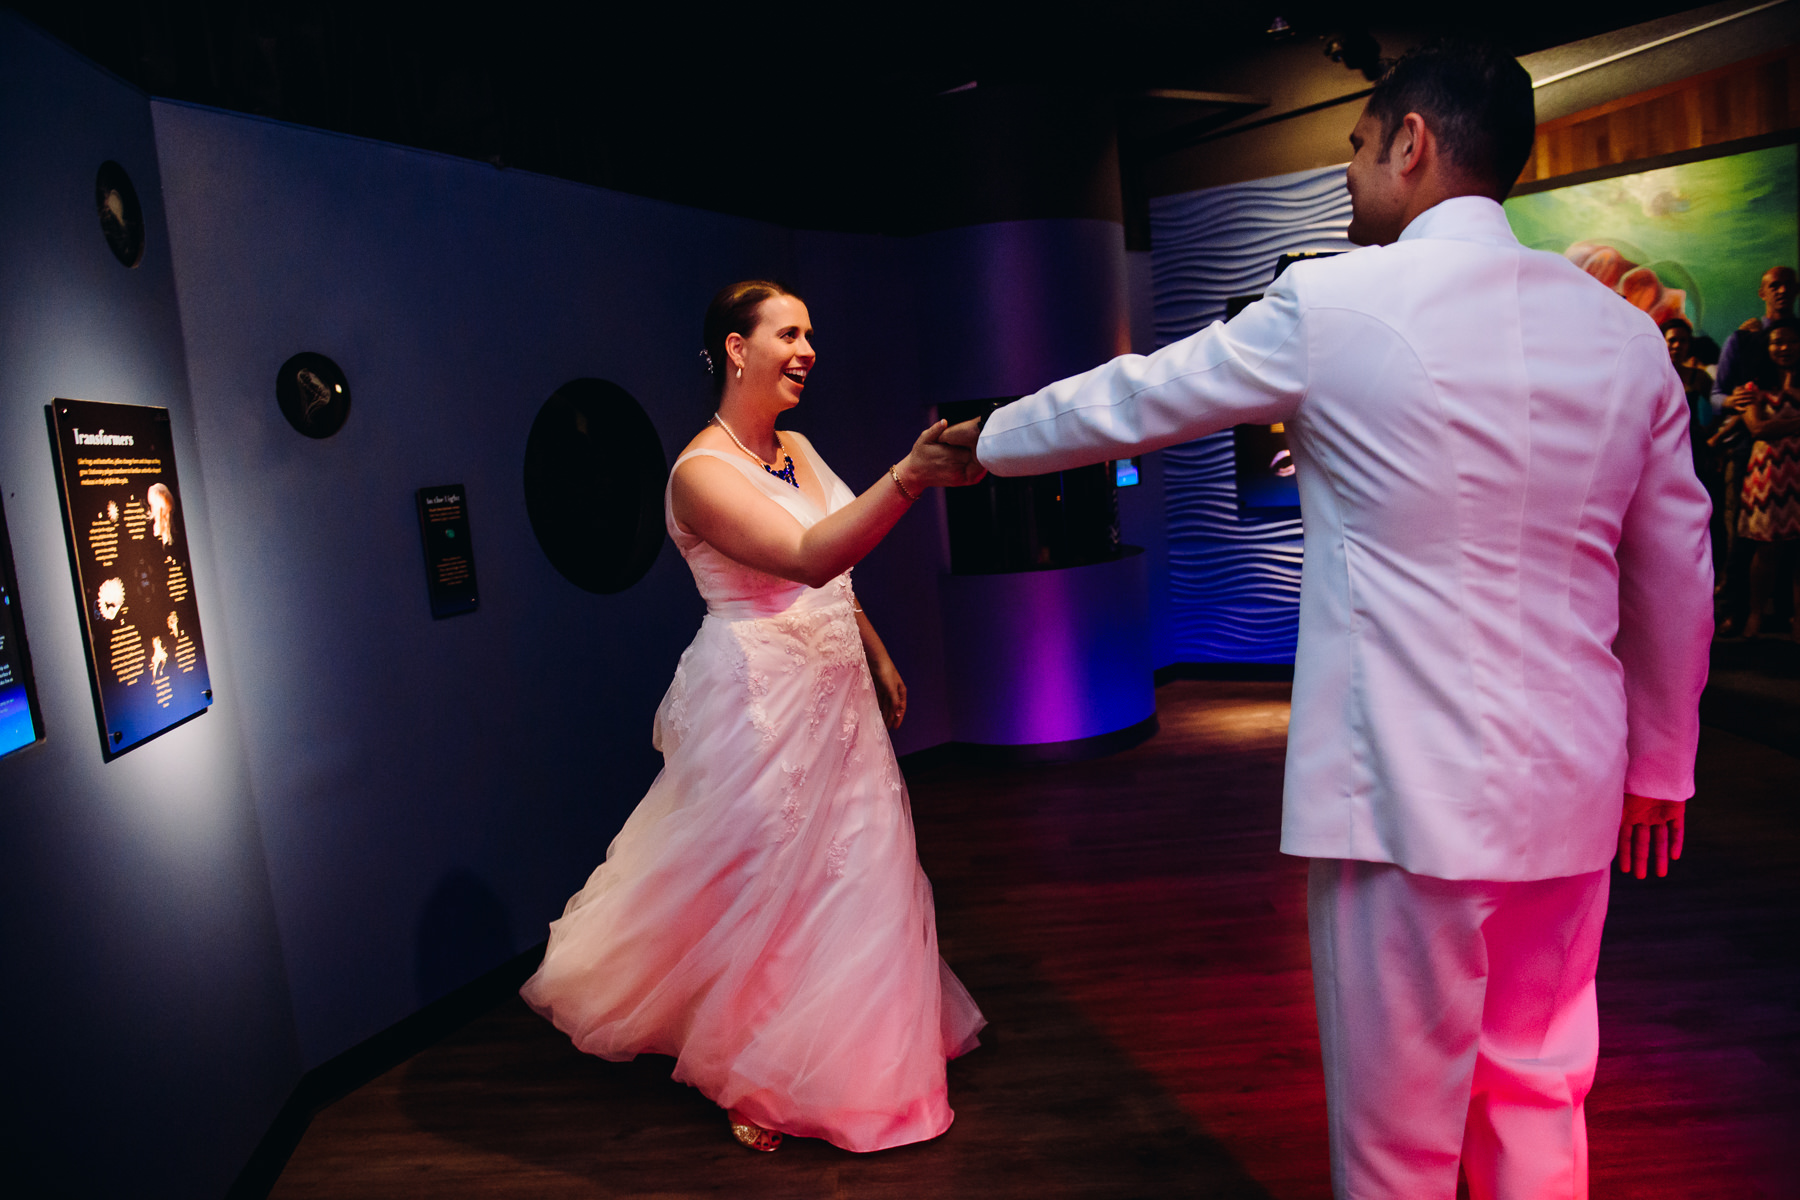 tacoma aquarium first dance